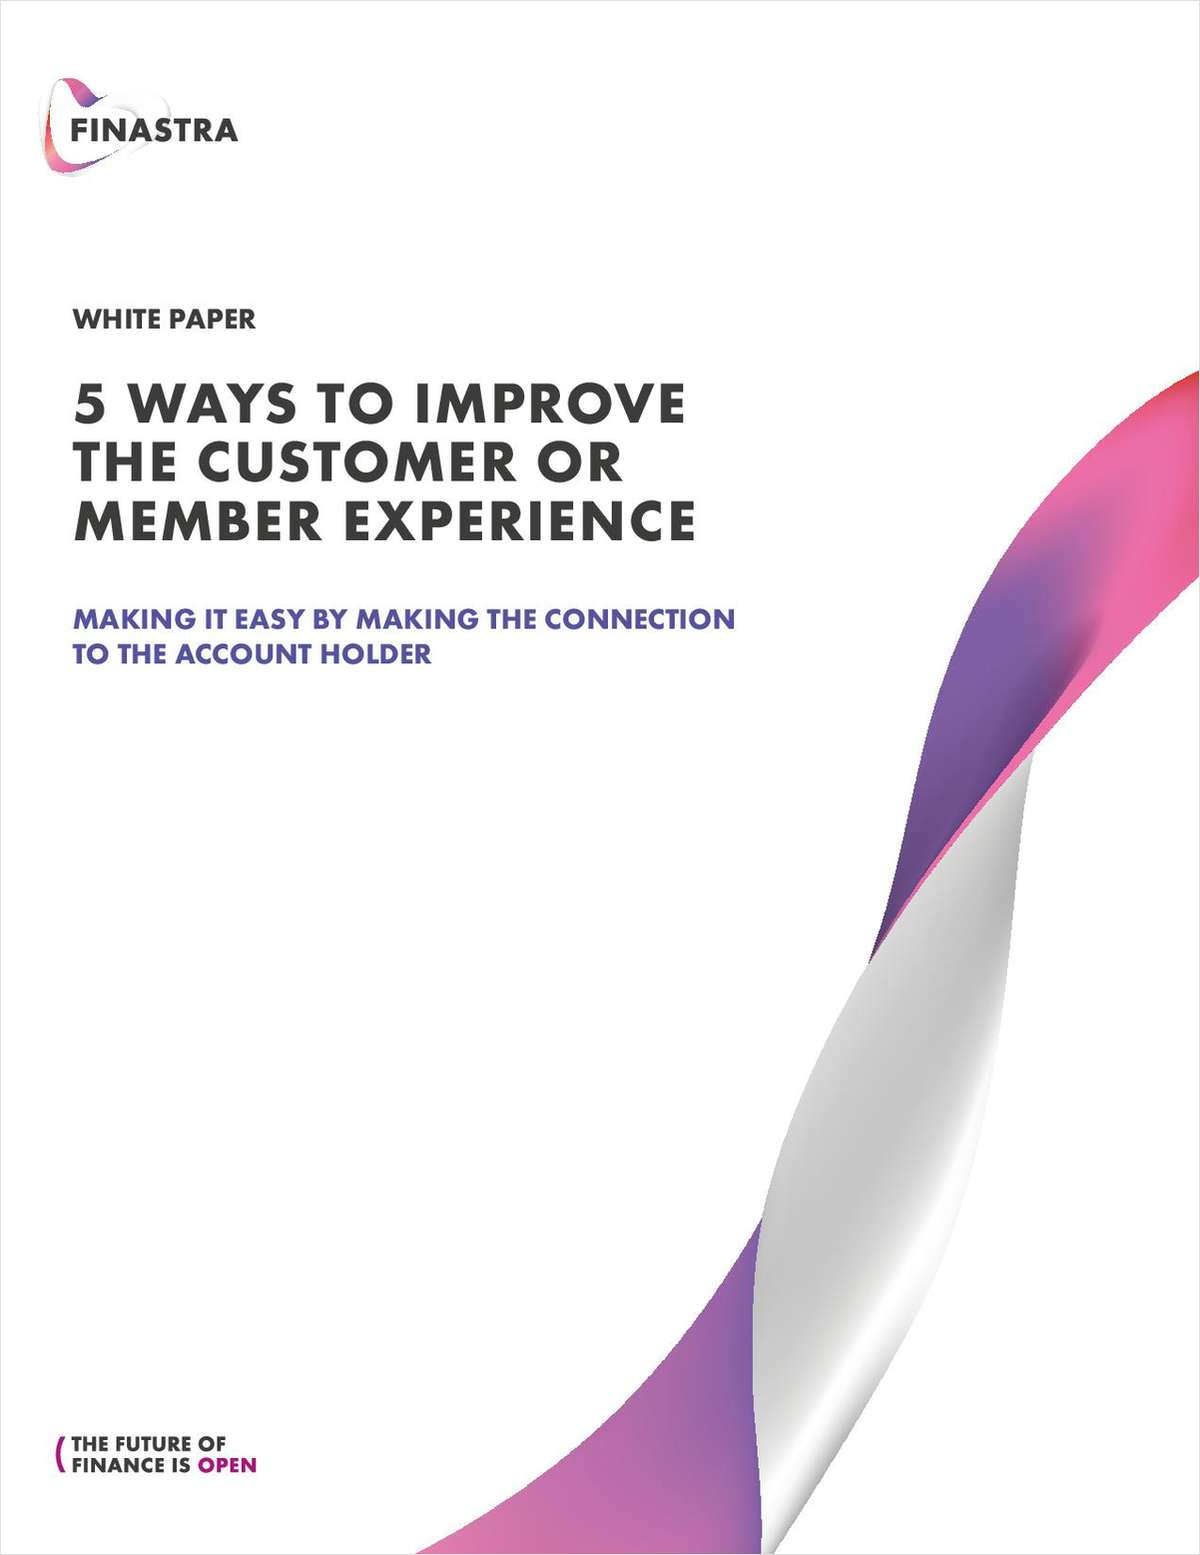 5 Ways to Improve the Member Experience